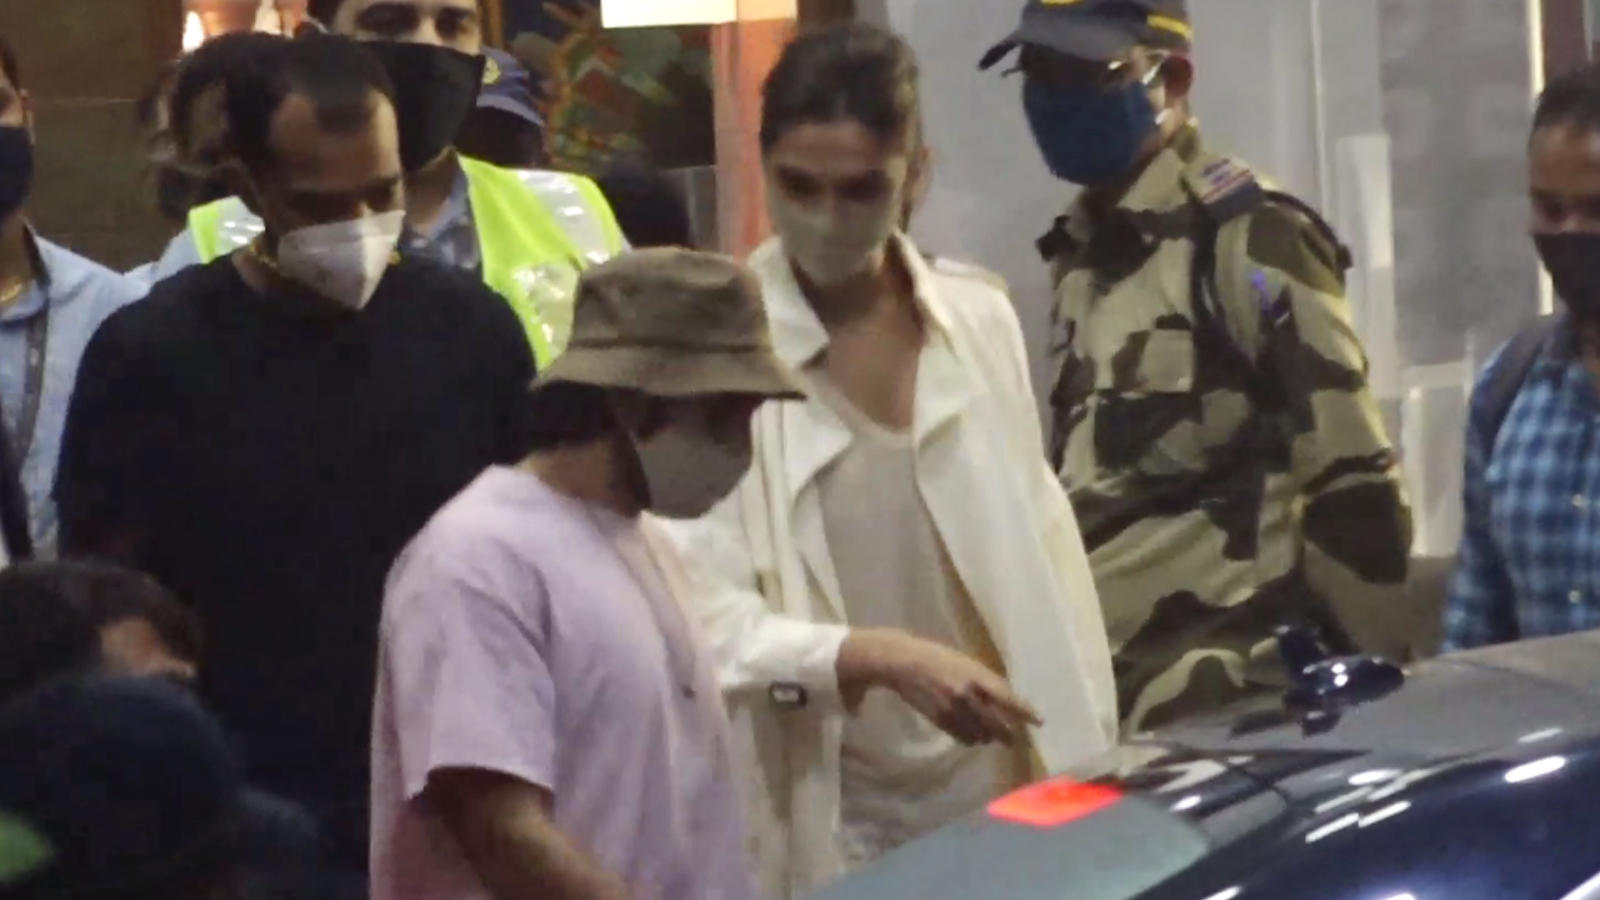 ranveer-singh-has-not-requested-ncb-to-let-him-accompany-wife-deepika-padukone-during-interrogation-confirms-agency-source